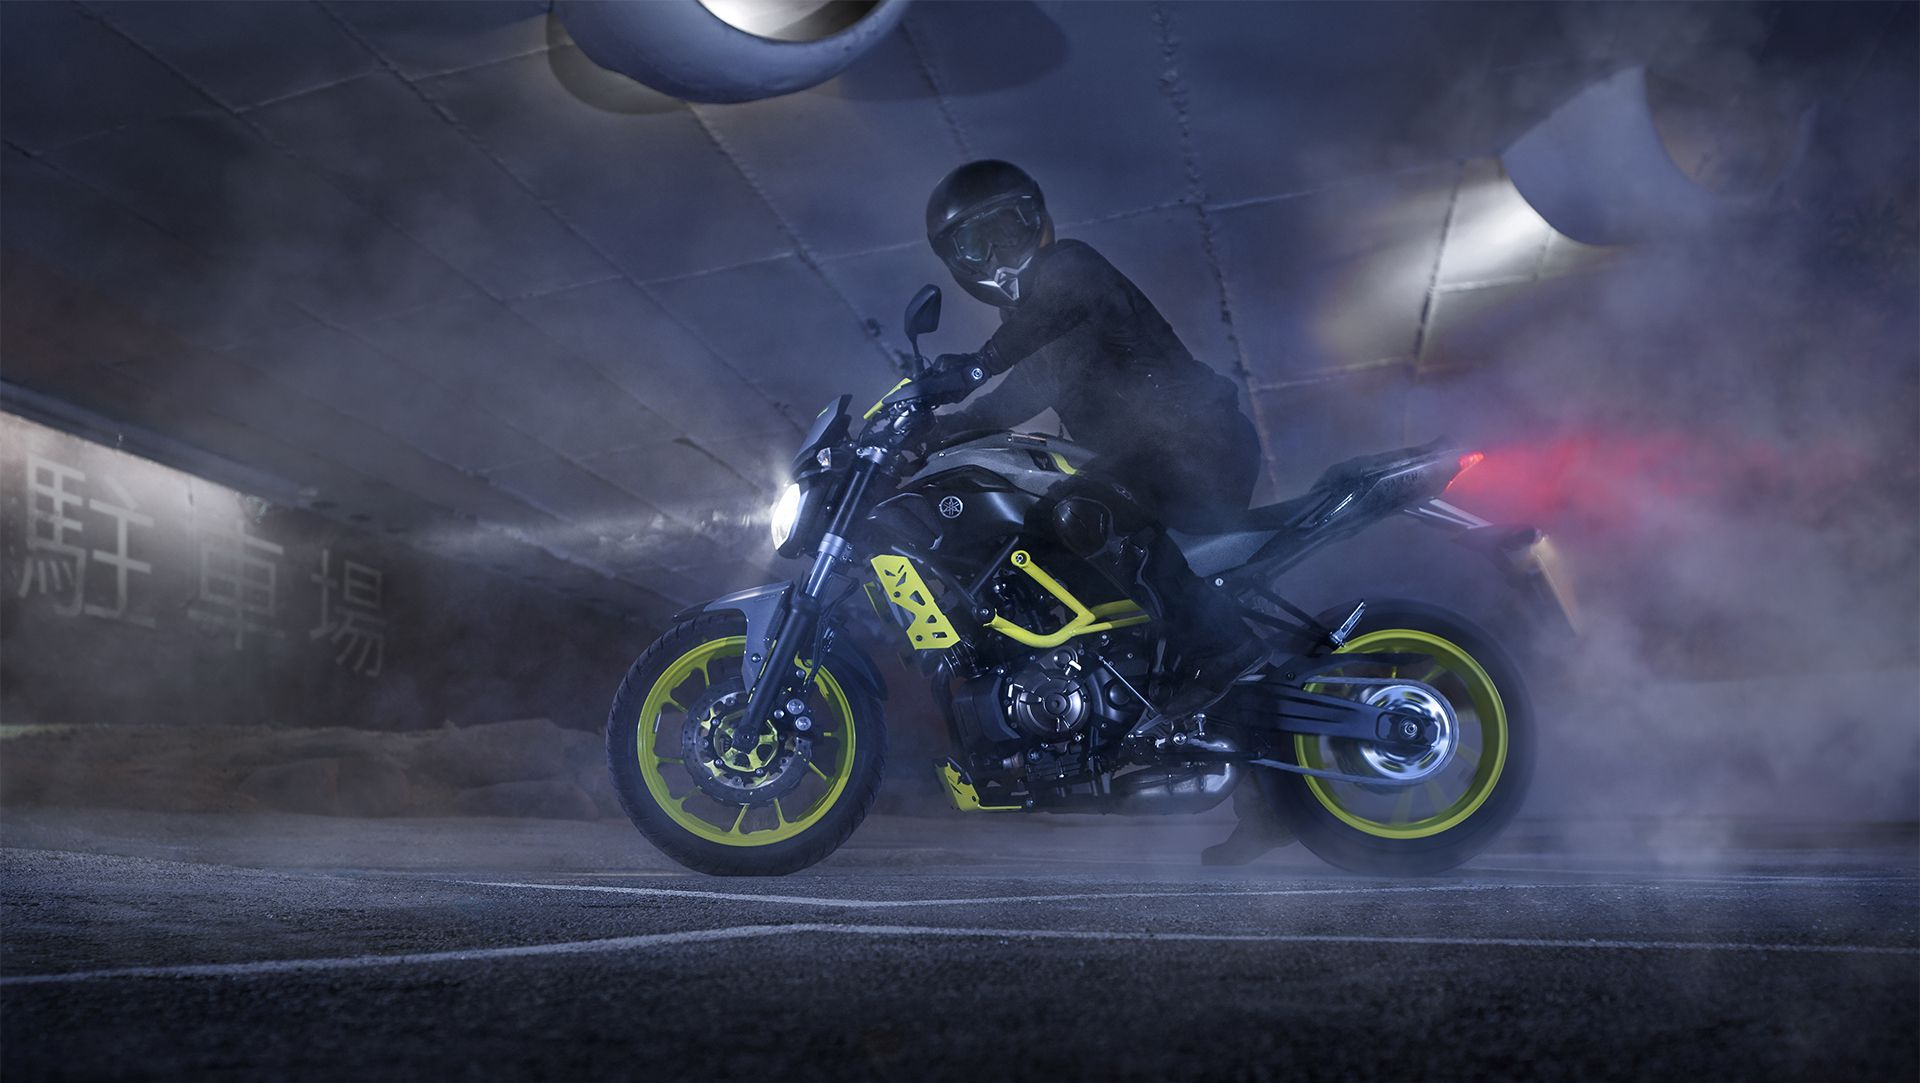 2016 Yamaha MT-10 price and vital technical data | Auto Moto